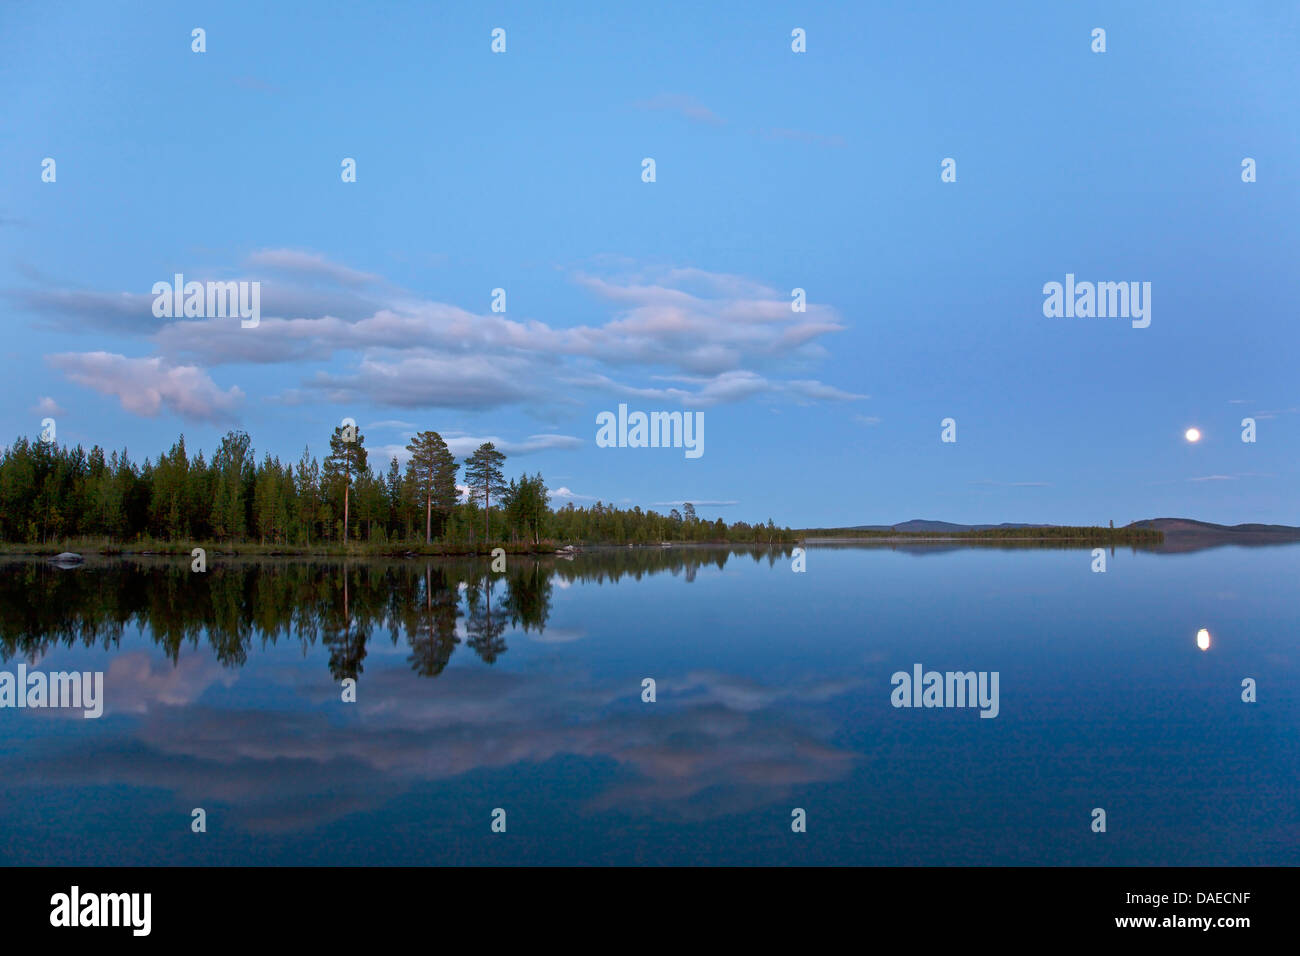 full moon mirroring in a lake in evening light, Sweden, Lapland, Norrbottens Laen, Kvikkjokk Stock Photo